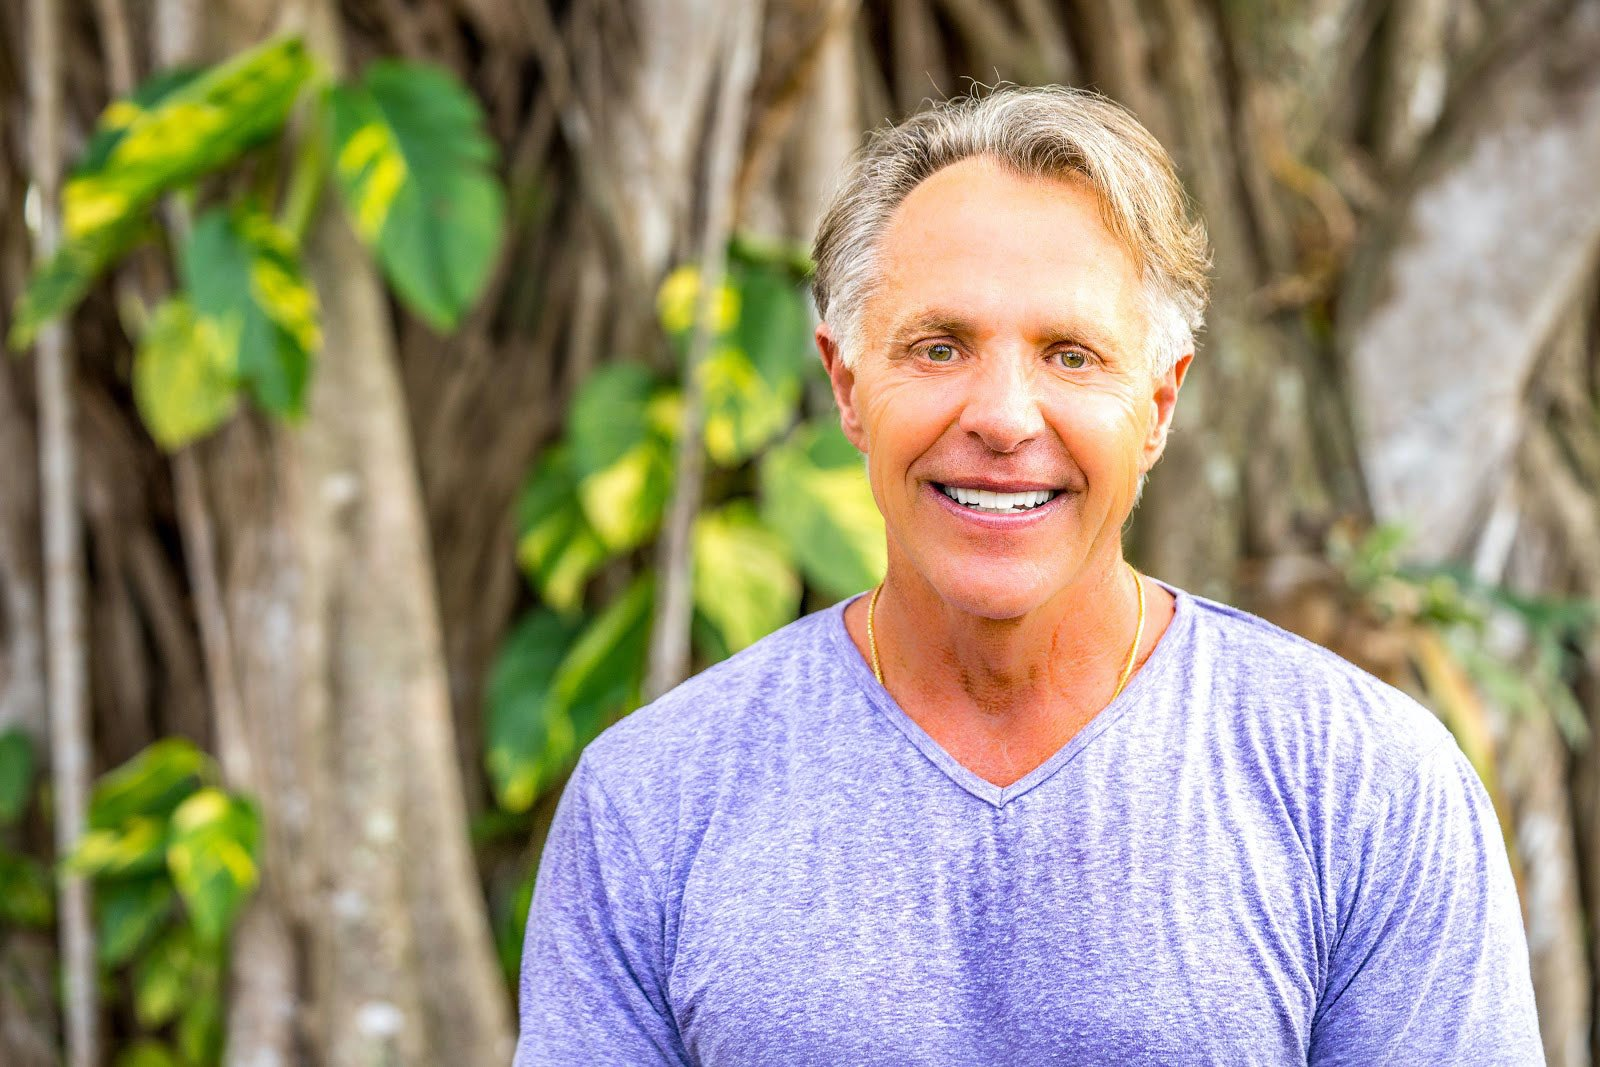 Meet David Essel - Life Coach and Author of